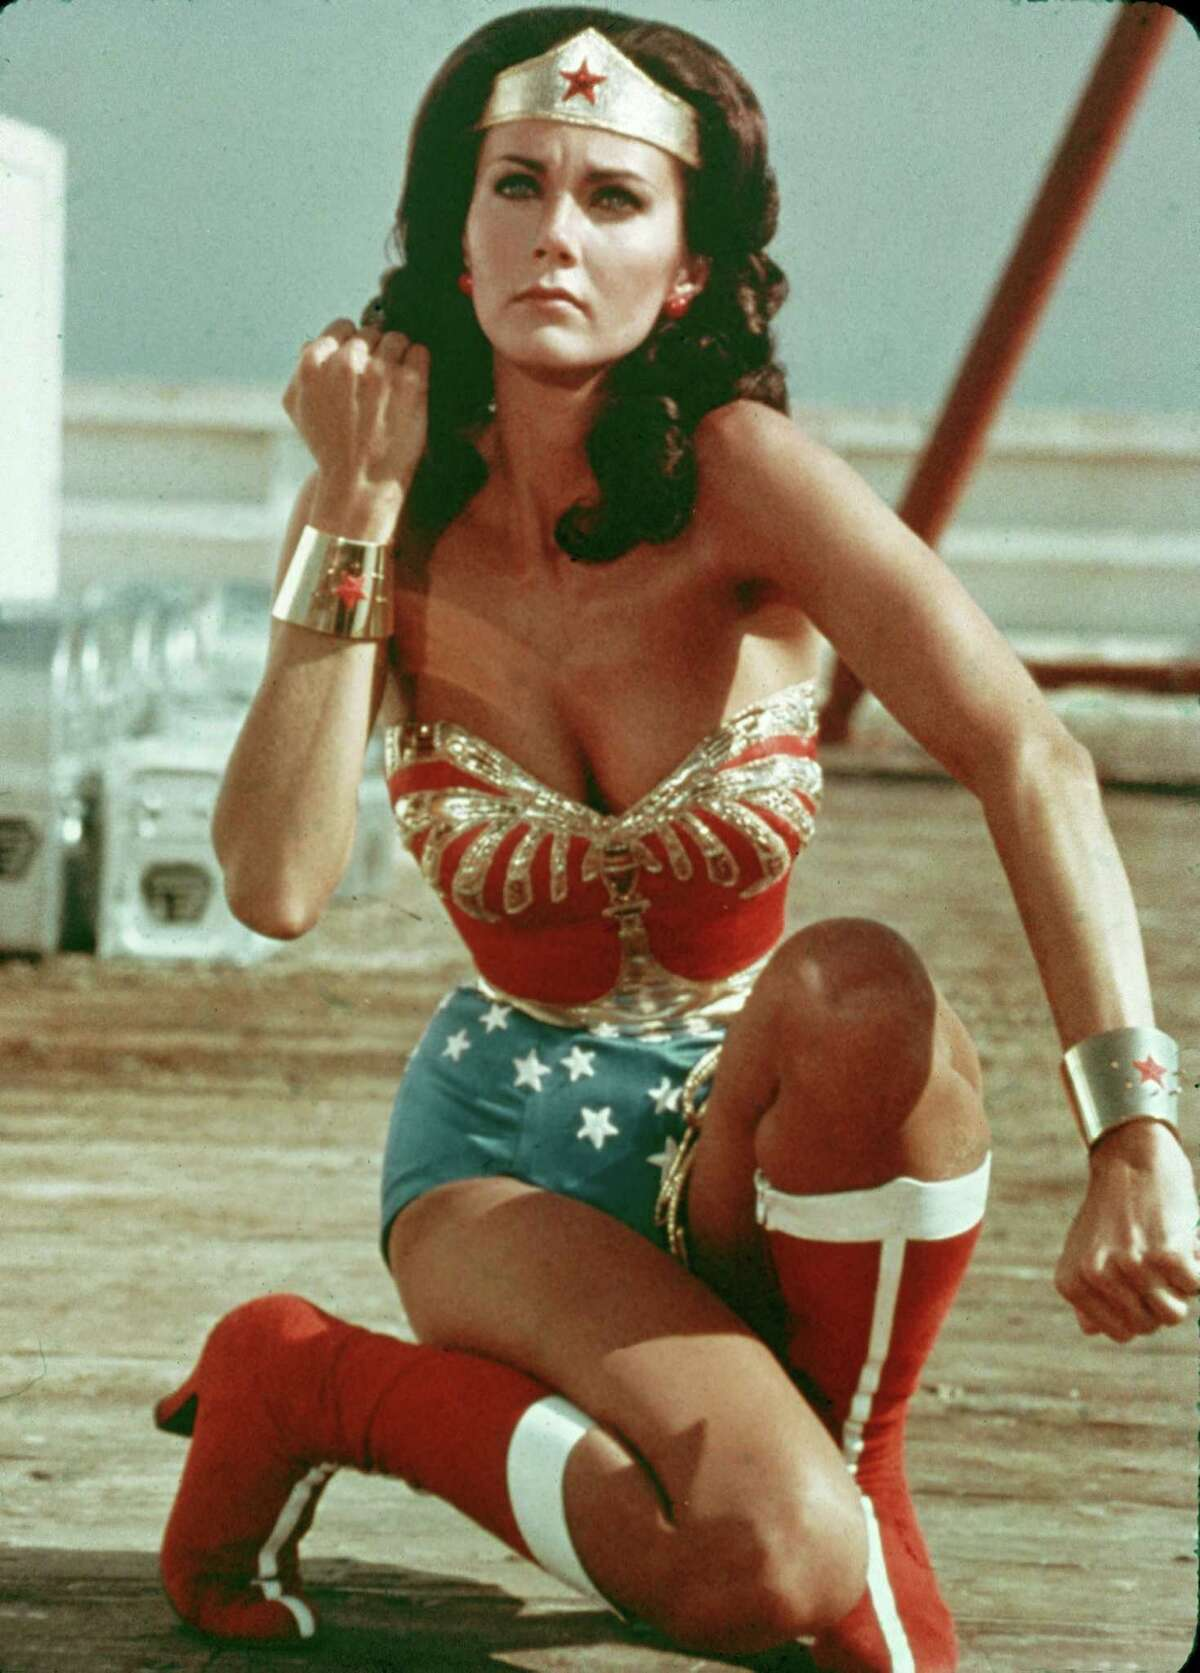 Playing perhaps the most famous female superhero of all time, Lynda Carter performed three seasons of the television series